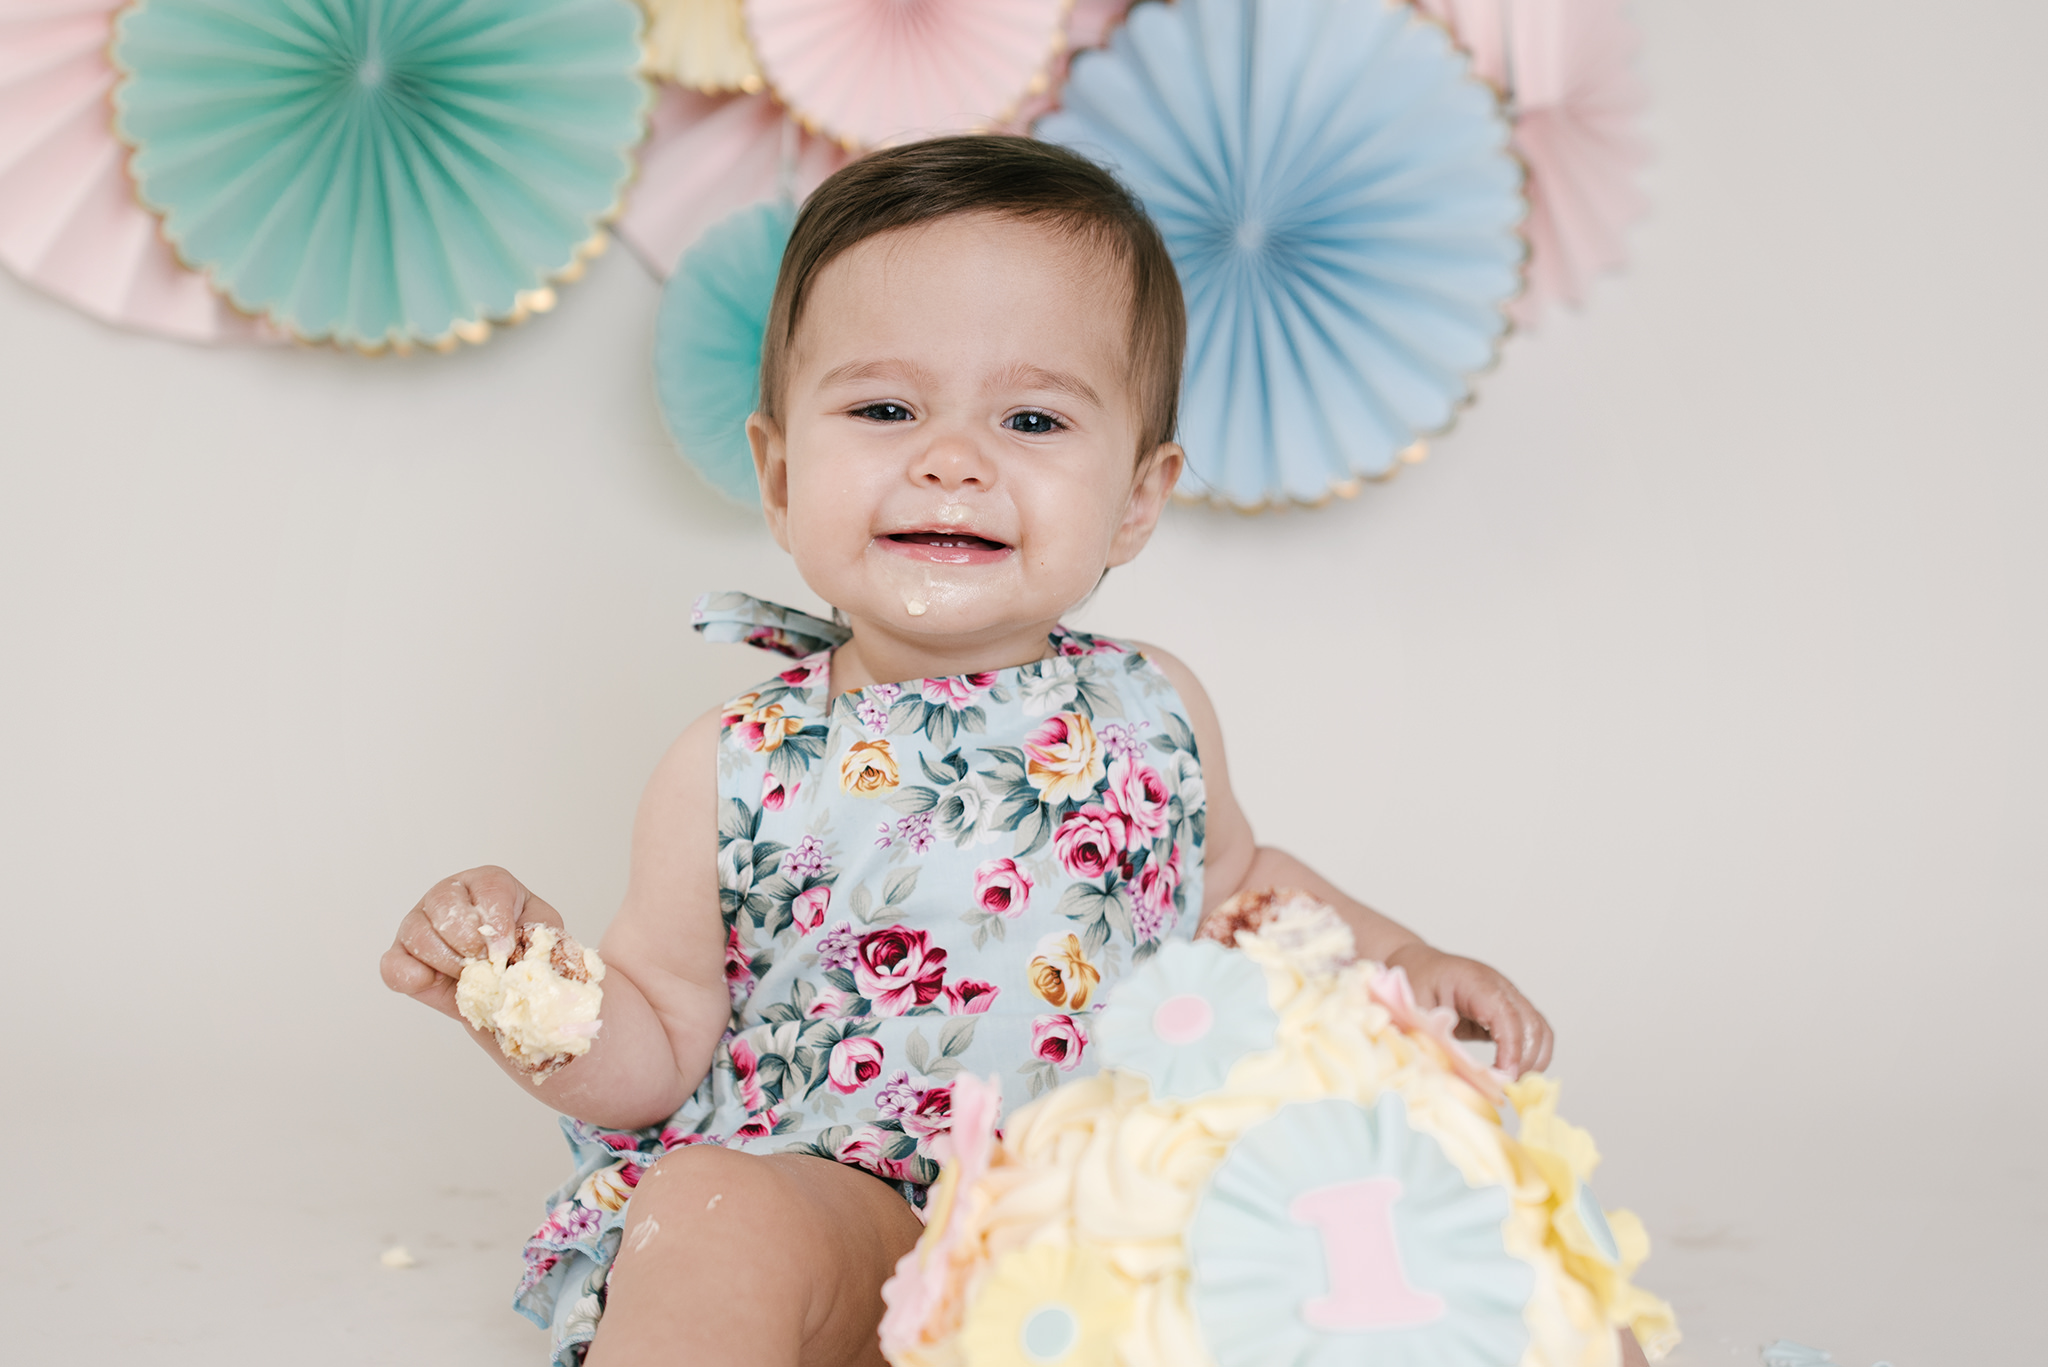 little girl wearing mint and floral romper smiling as she eats cake | Cake Smash Photographer Aylesbury Buckinghamshire and Thame Oxfordshire